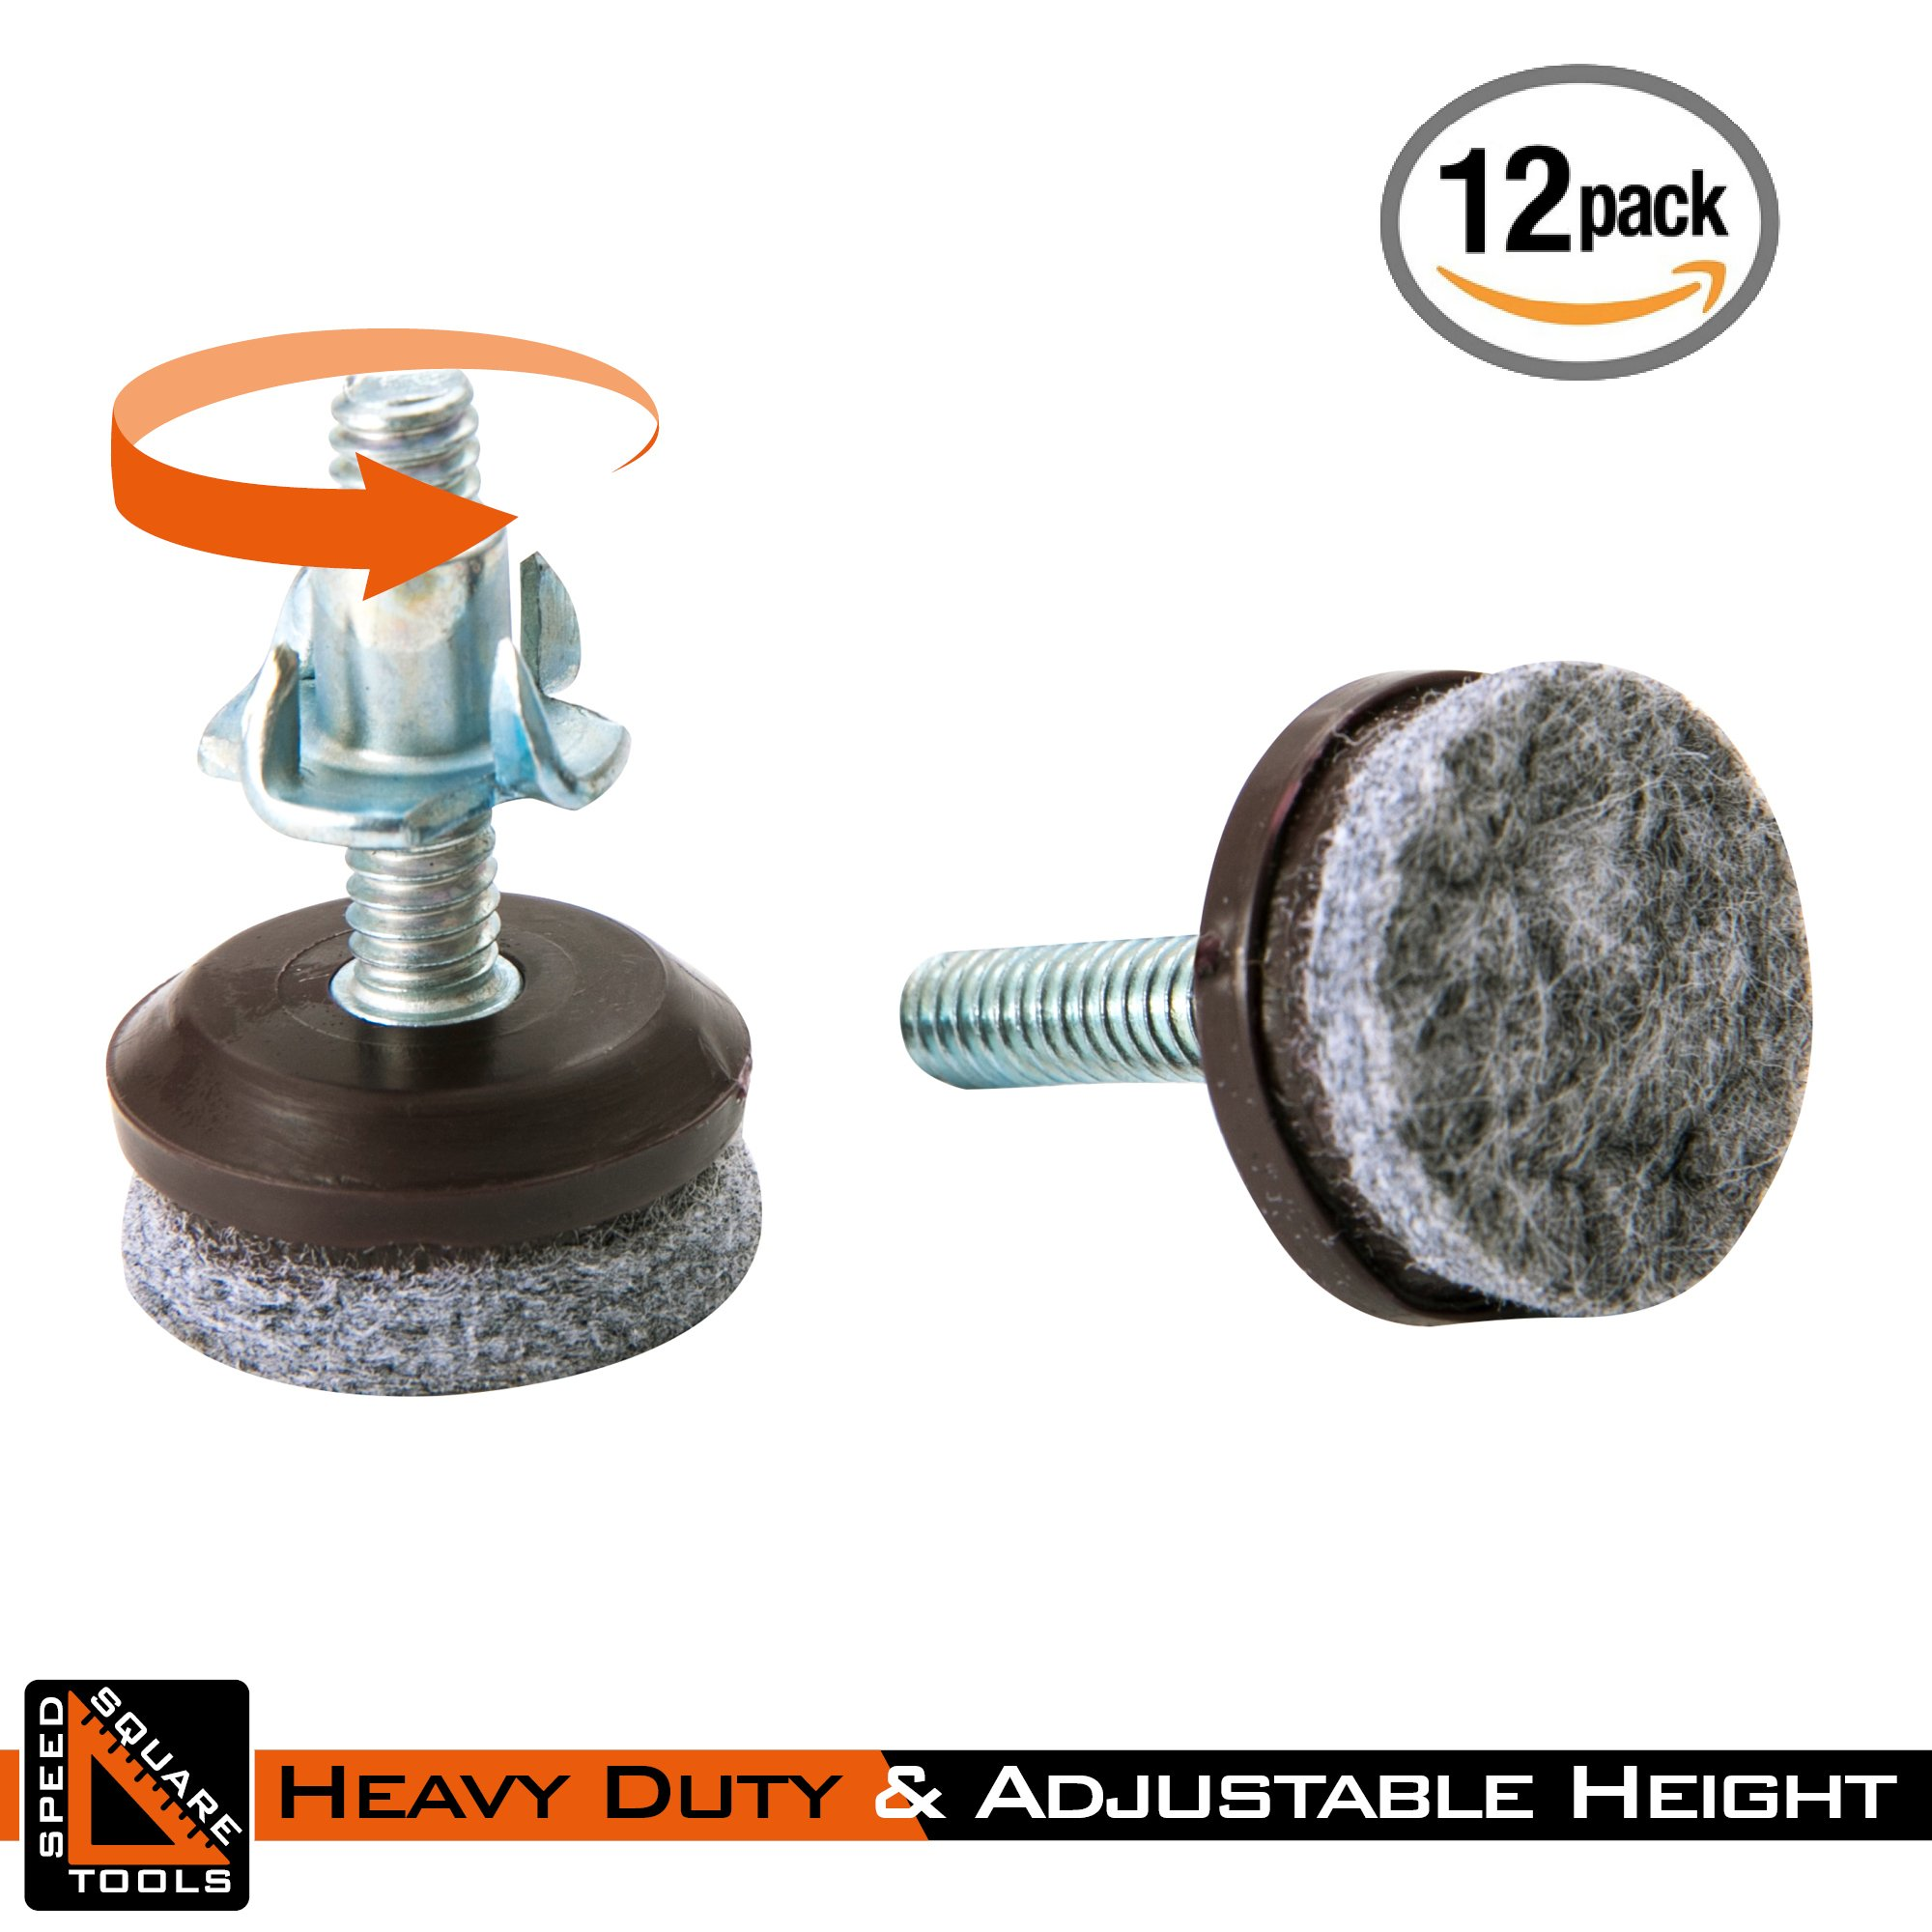 Furniture Levelers | Heavy Duty & Integrated High-Density Felt | Fully Threaded Adjustable Height 0.5'' to 1.25'' | Great Glide Pads for Home, Office, DIY, Restaurant, Café | 12 Pack by SpeedSquare Tools (Image #5)